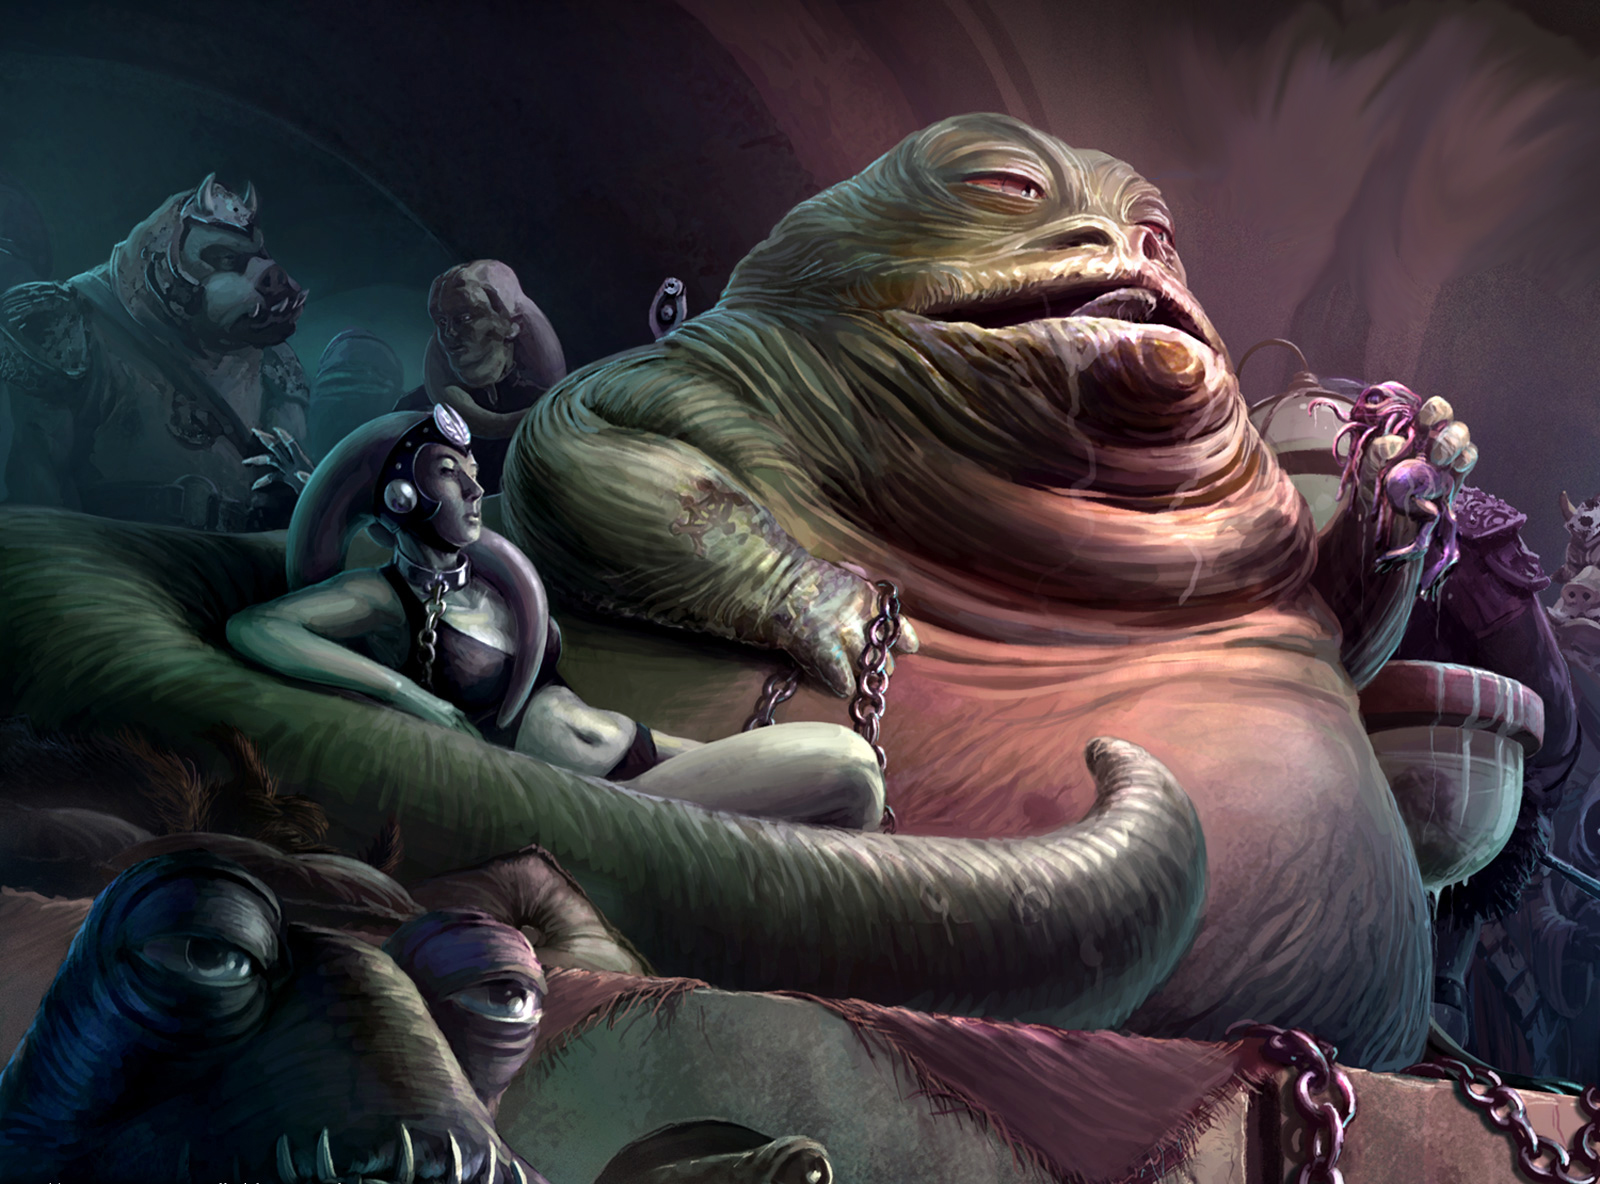 Guillermo Del Toro Star Wars Movie Idea Godfather Style Jabba The Hutt Movie